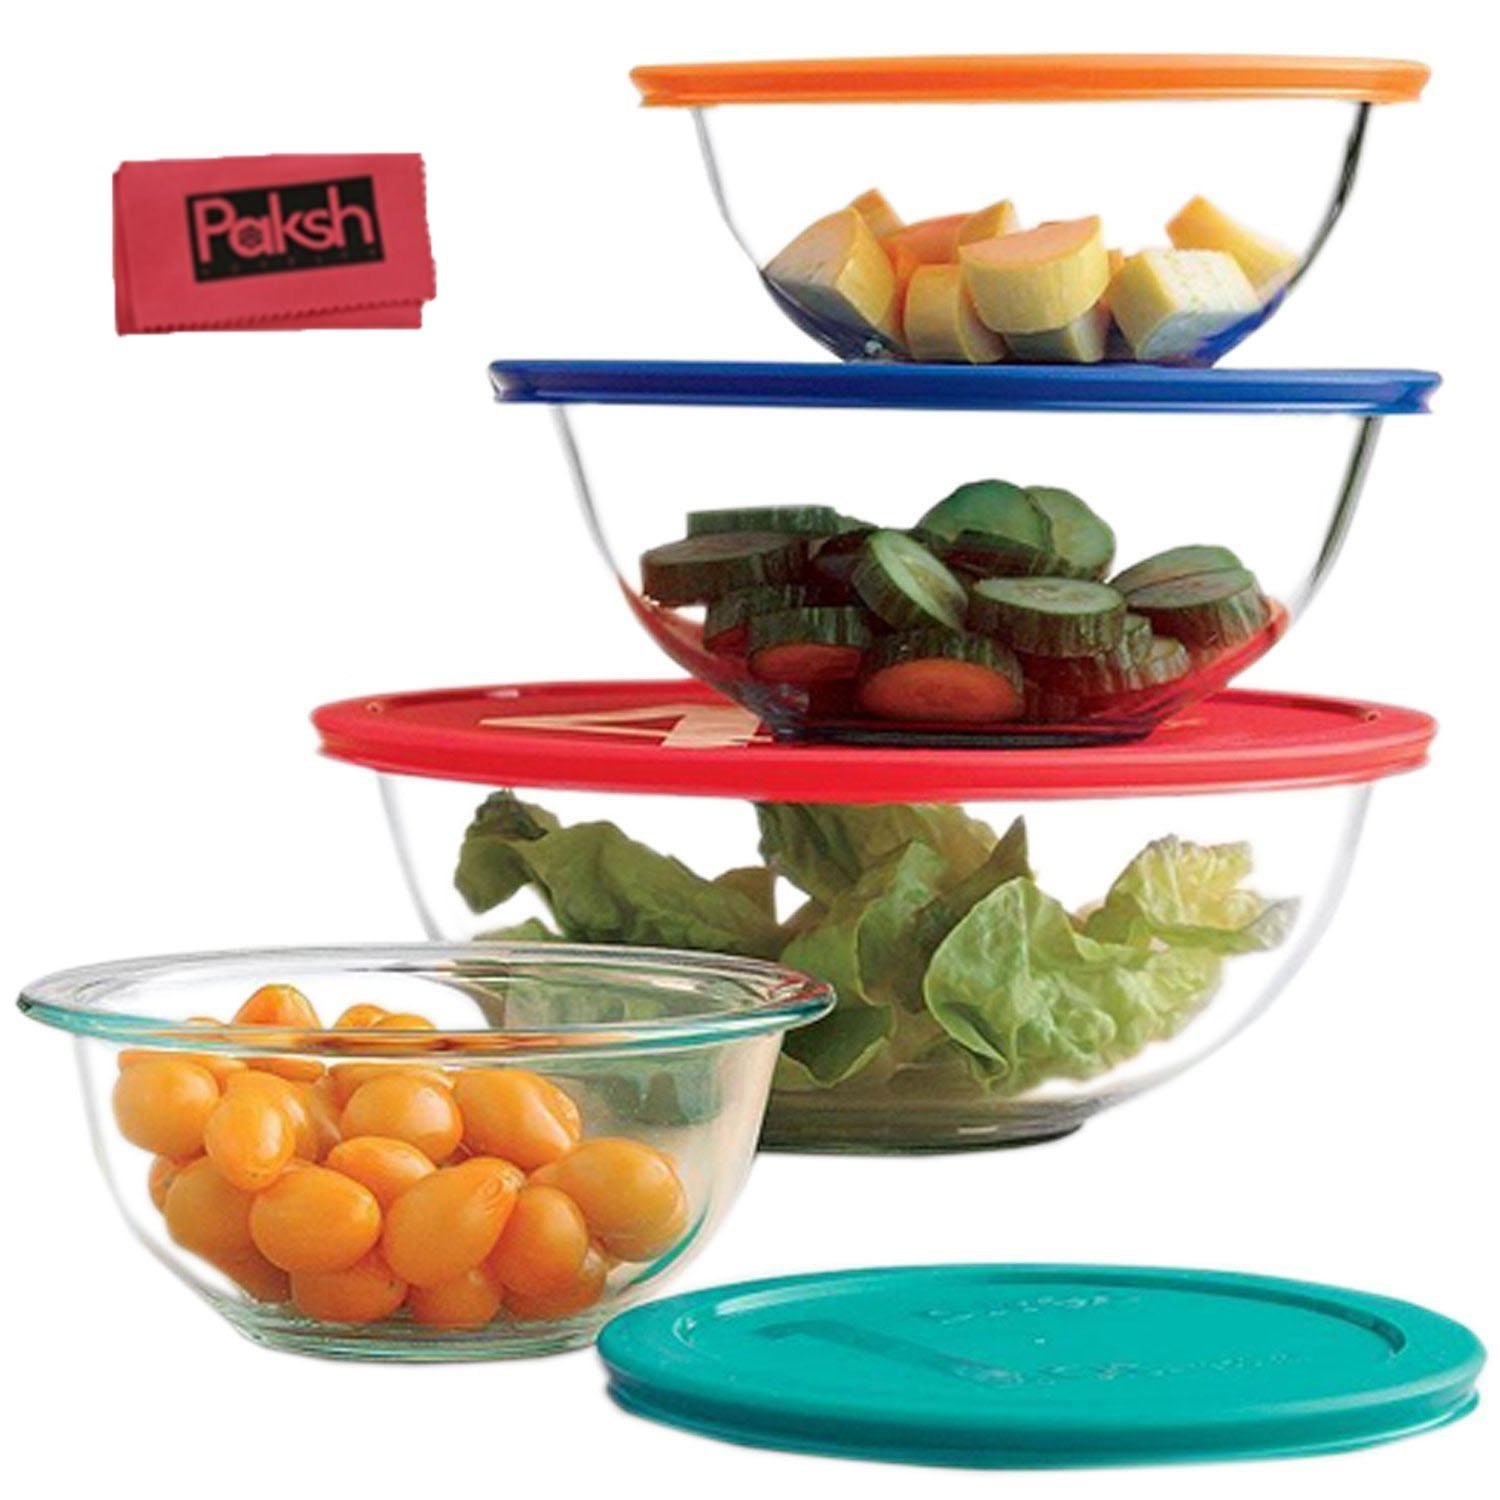 Amazon.com: 8 Piece Glass Mixing Bowls With Lids | Glass Food Storage  Containers | Dishwasher, Oven And Microwave Safe, Clear   Bundled With  French Whisk ...